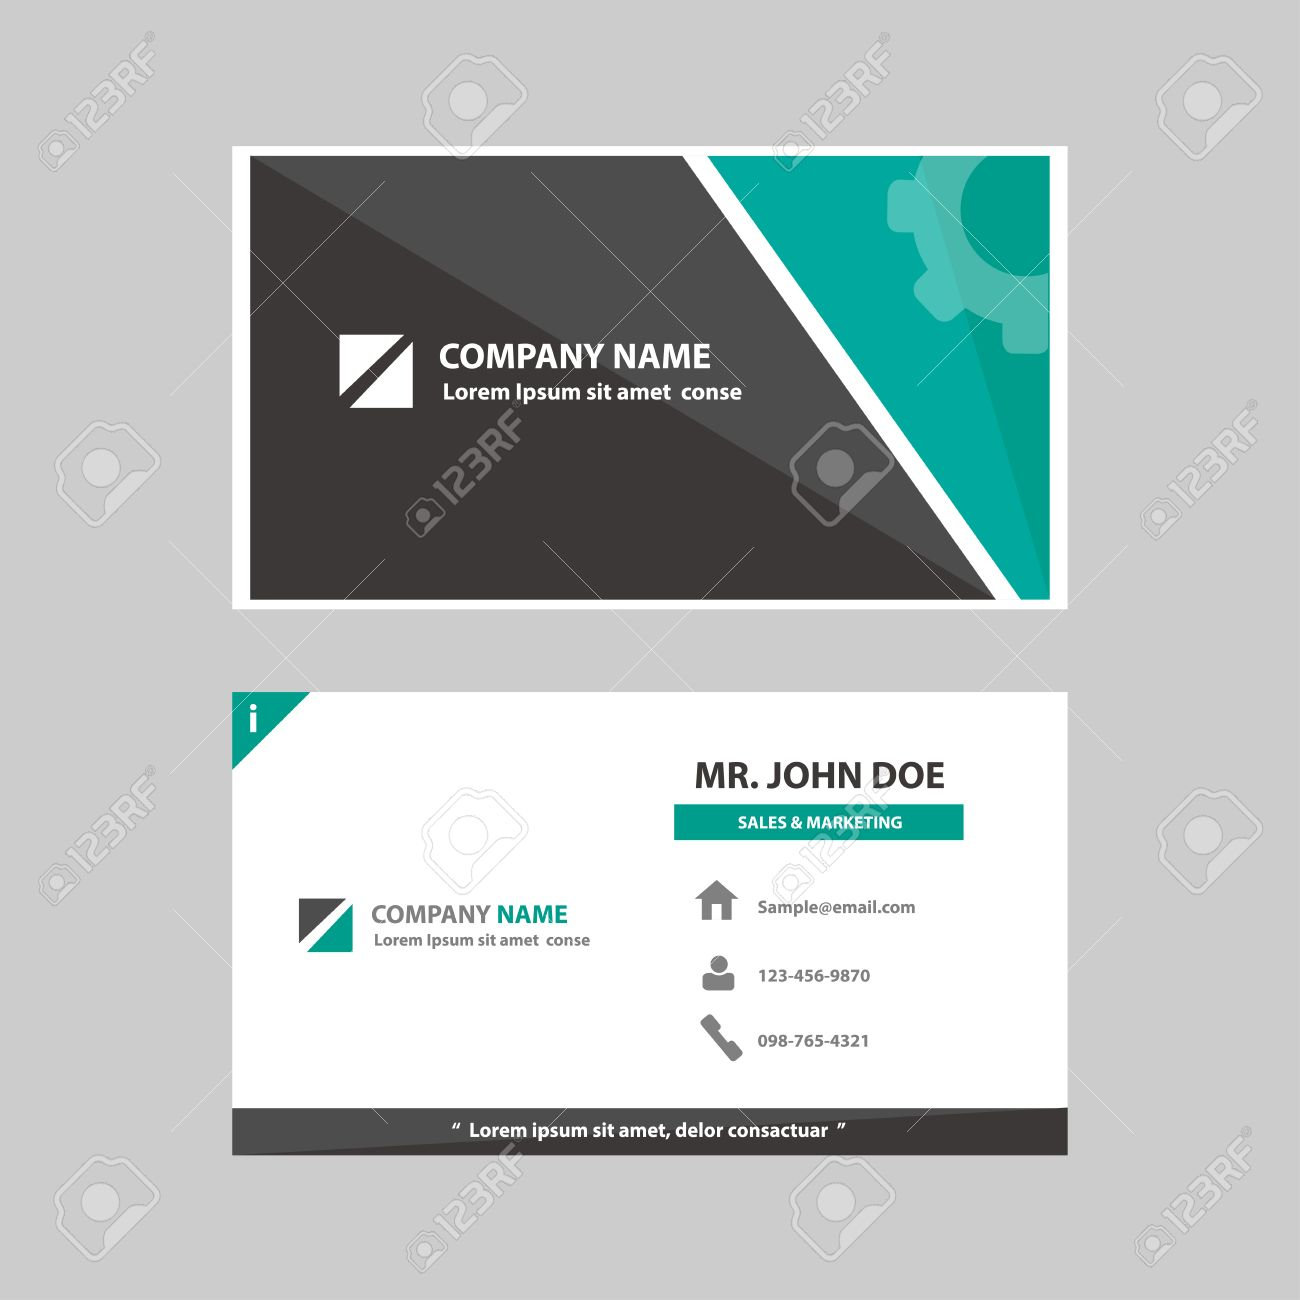 Green and black multipurpose business profile card template flat green and black multipurpose business profile card template flat design for company advertising introduce marketing recruitment friedricerecipe Choice Image